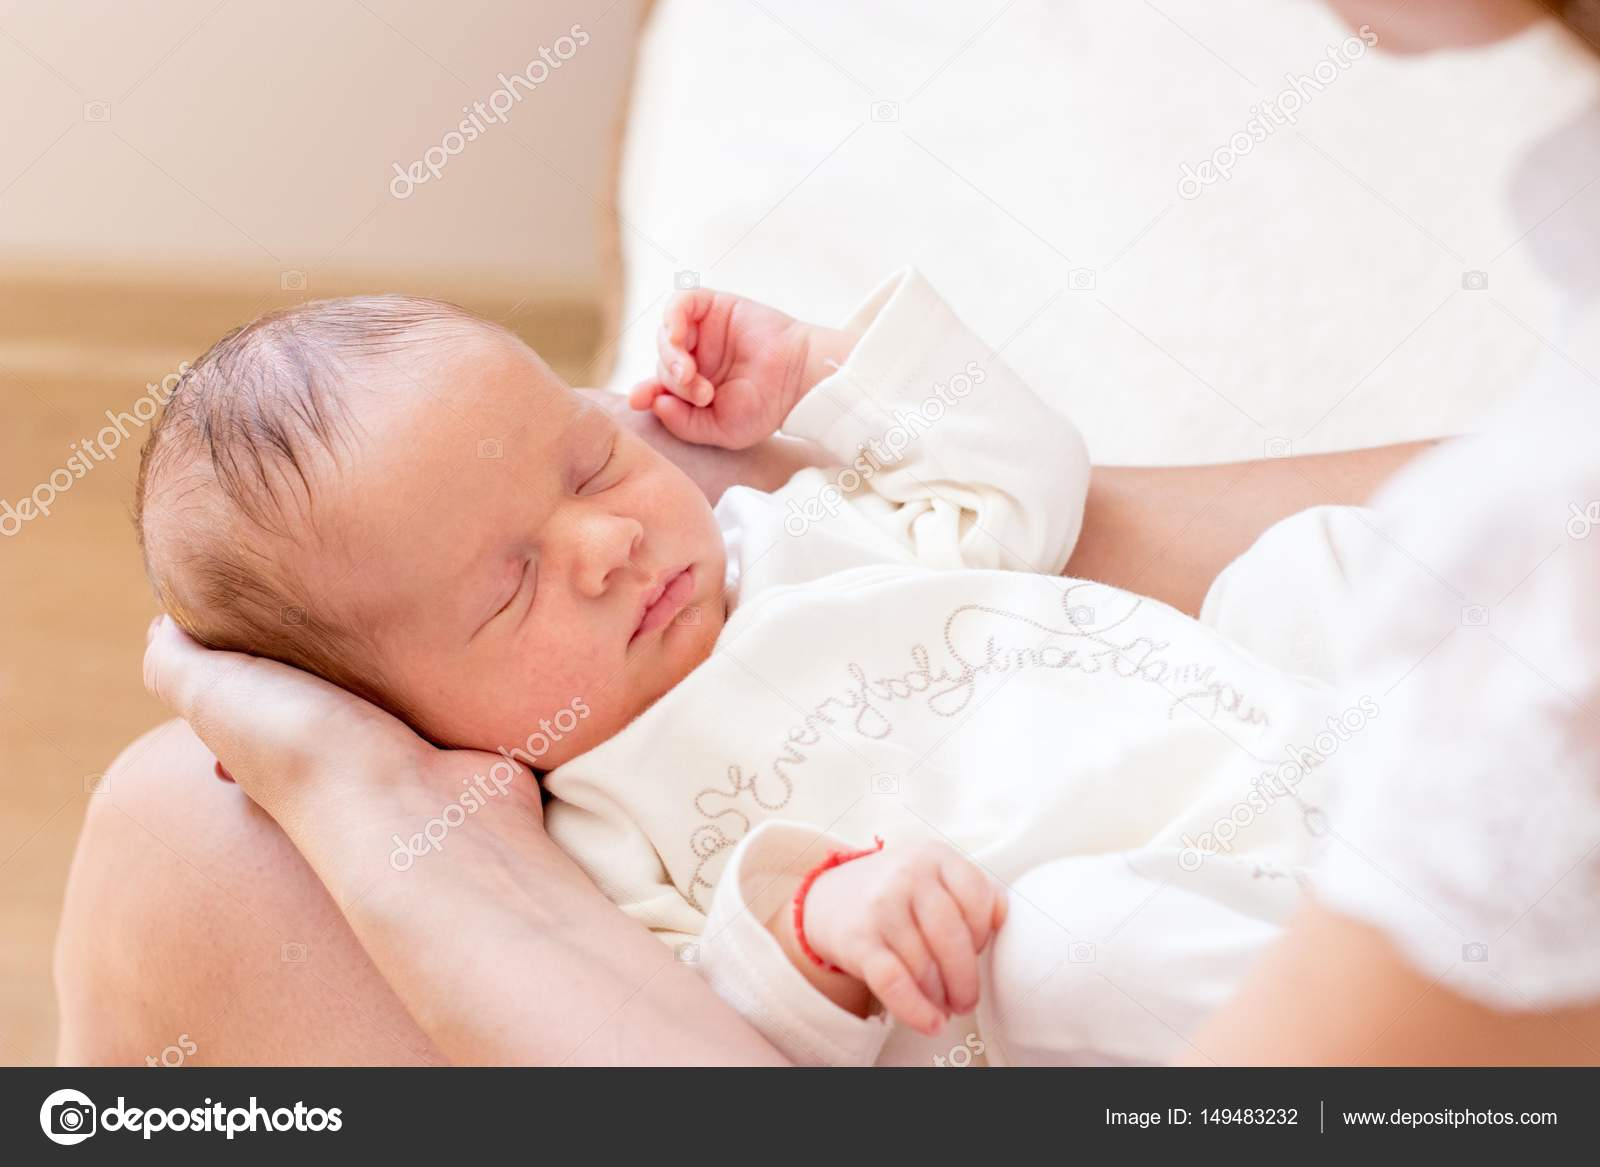 Beautiful delicate picture of the child and mother photo legs handles baby closeup lovely babys legs newborns stock image